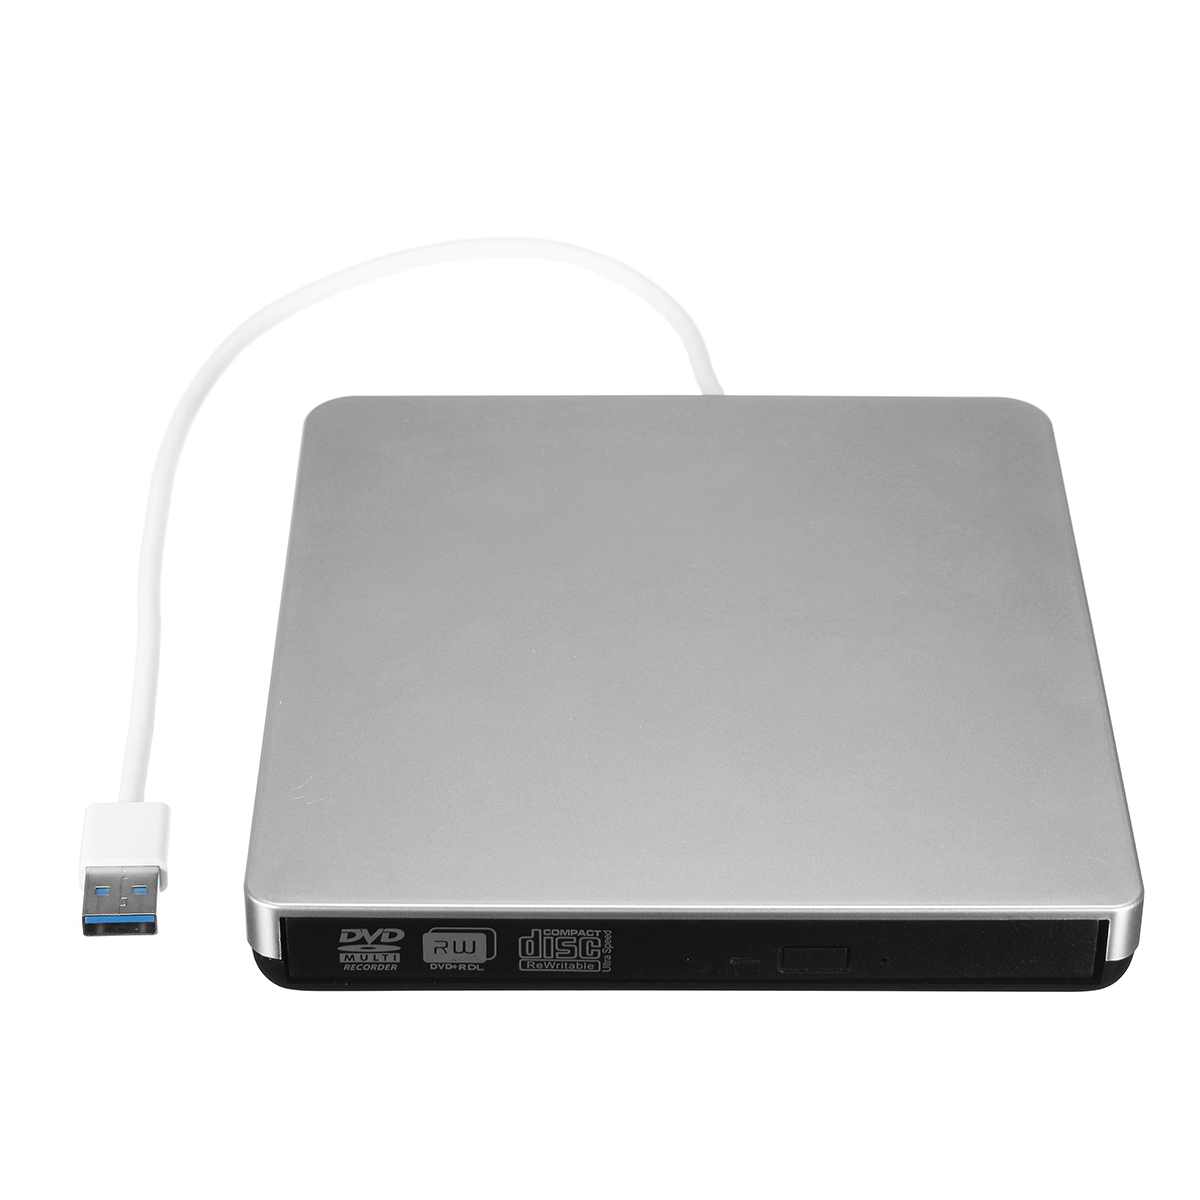 External USB 3.0 DVD CD-RW Drive Writer Burner DVD Player Optical Drives For Laptop Desktop PC